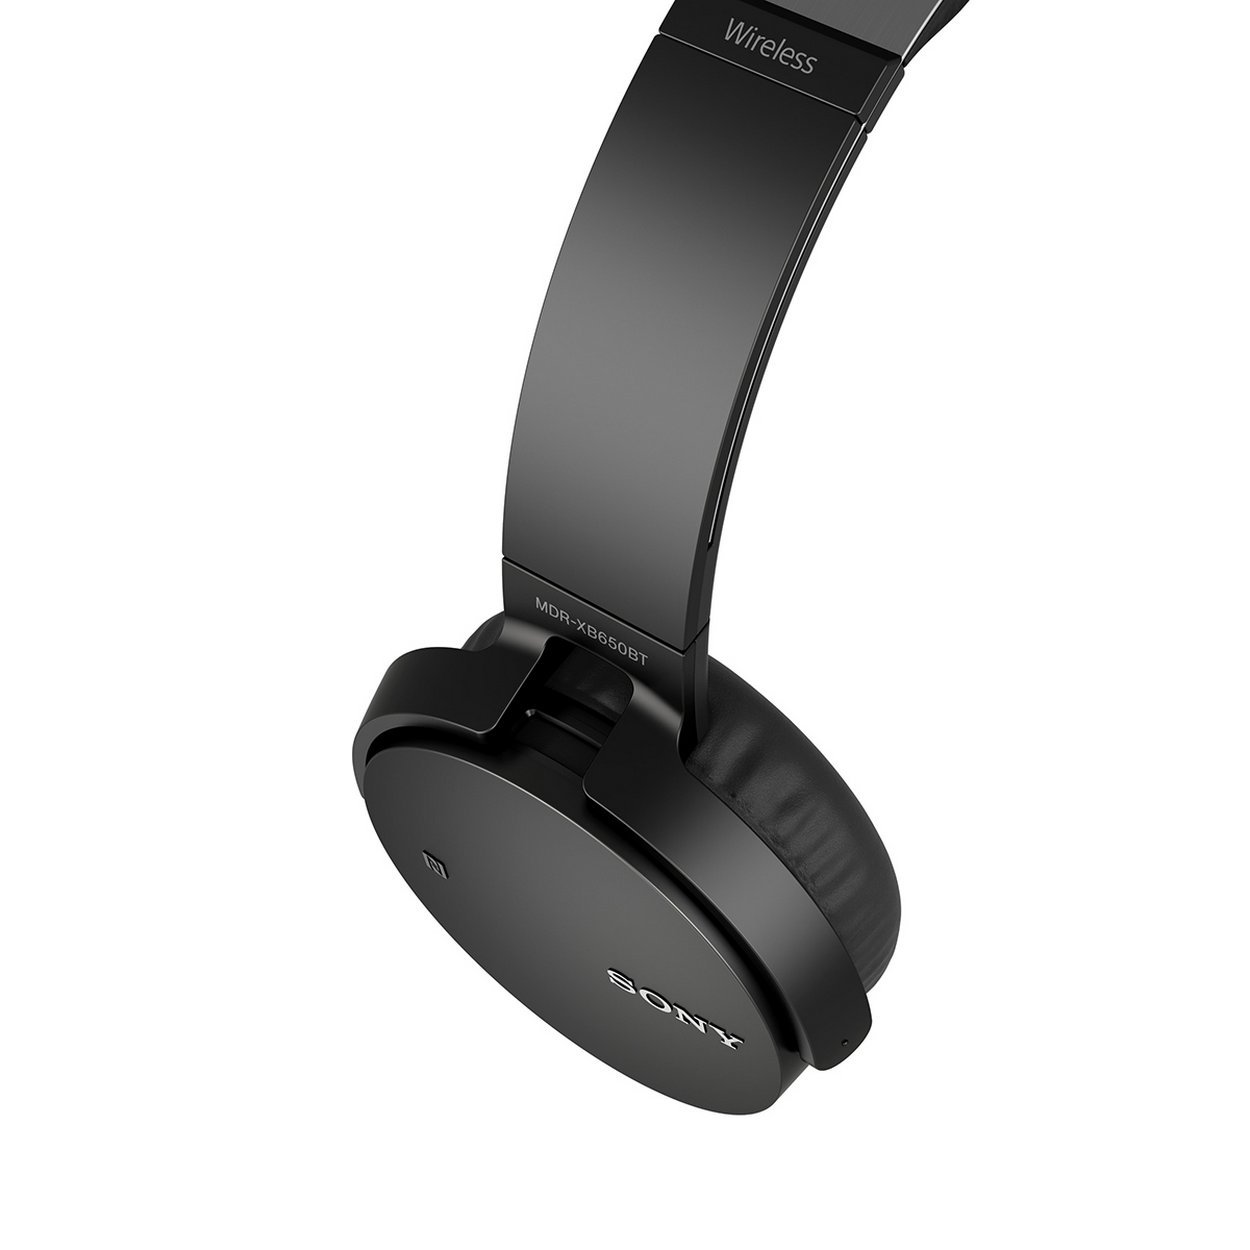 sony wireless earbuds. buy sony extra bass mdr-xb650bt wireless headphones (black) online at low prices in india - amazon.in earbuds i